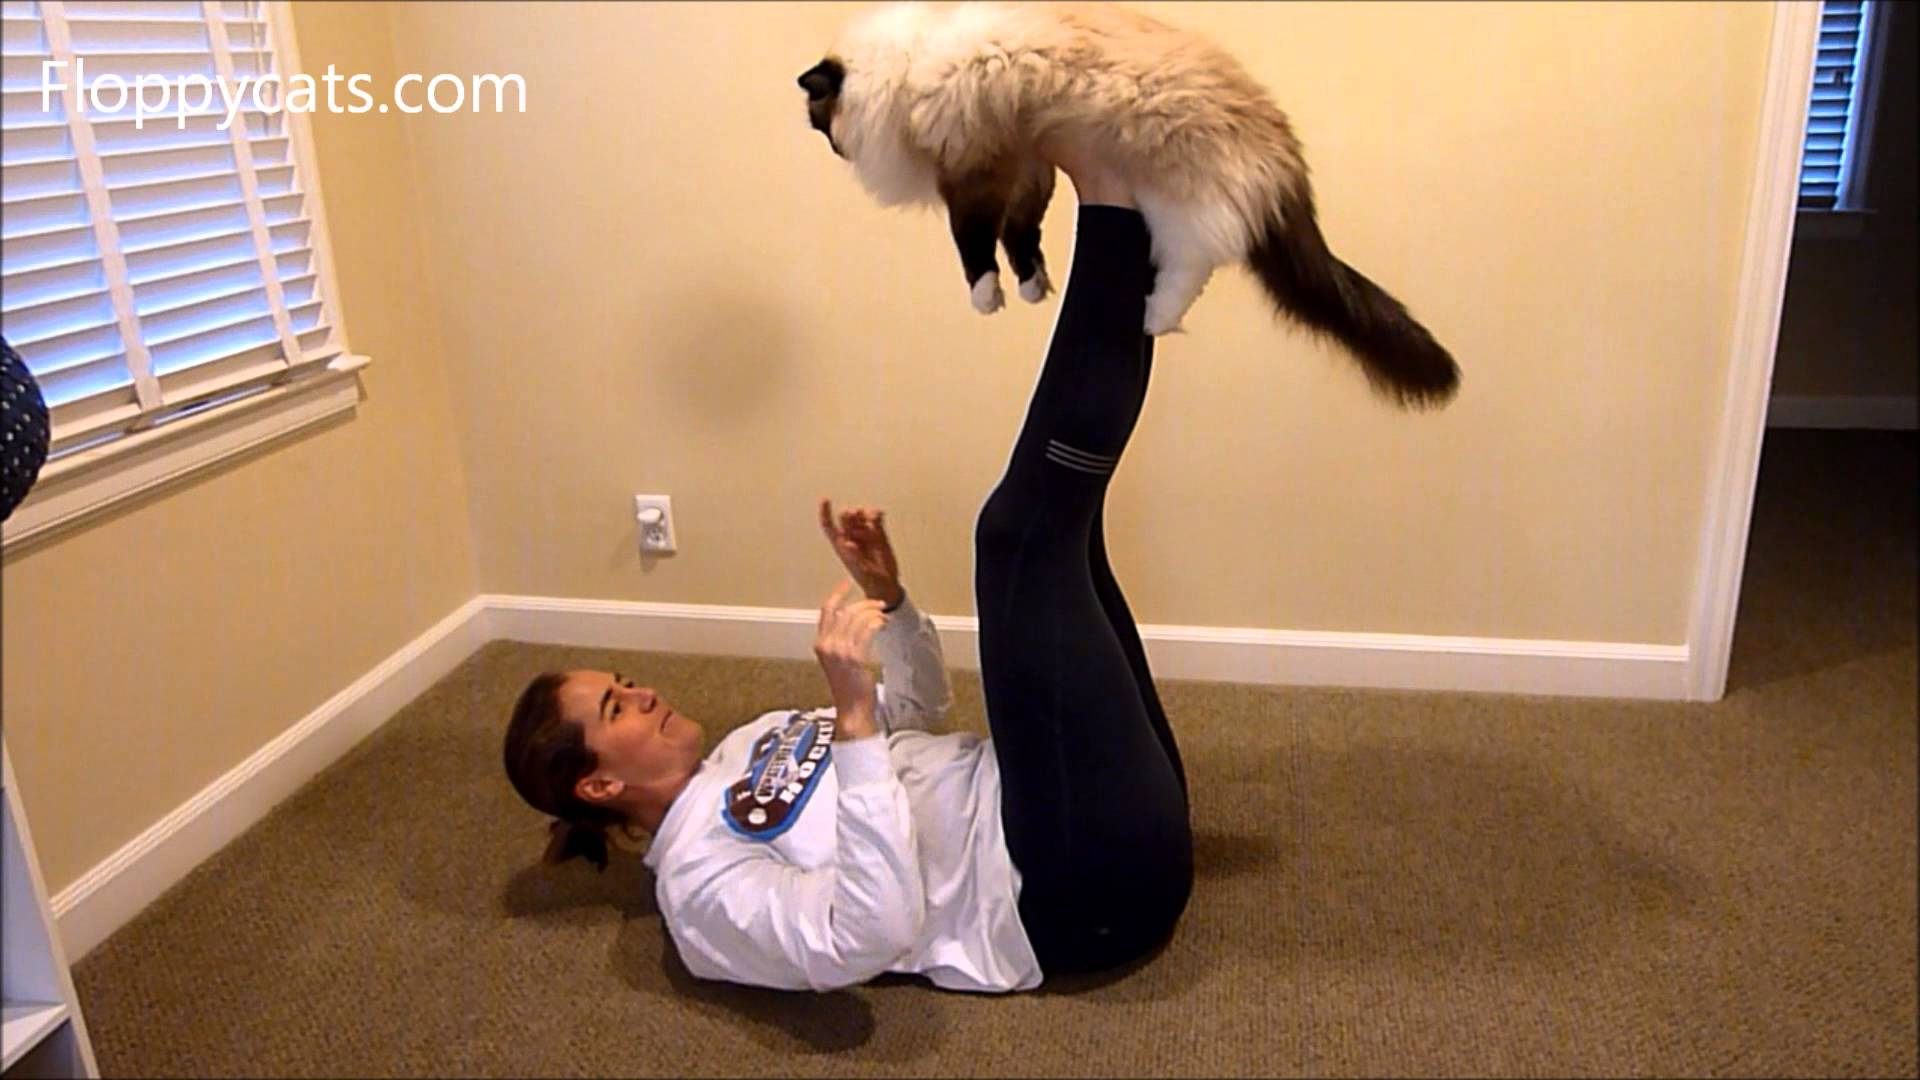 How to Do Airplane with Your Ragdoll Cat - ねこ - ラグドール - Floppycats